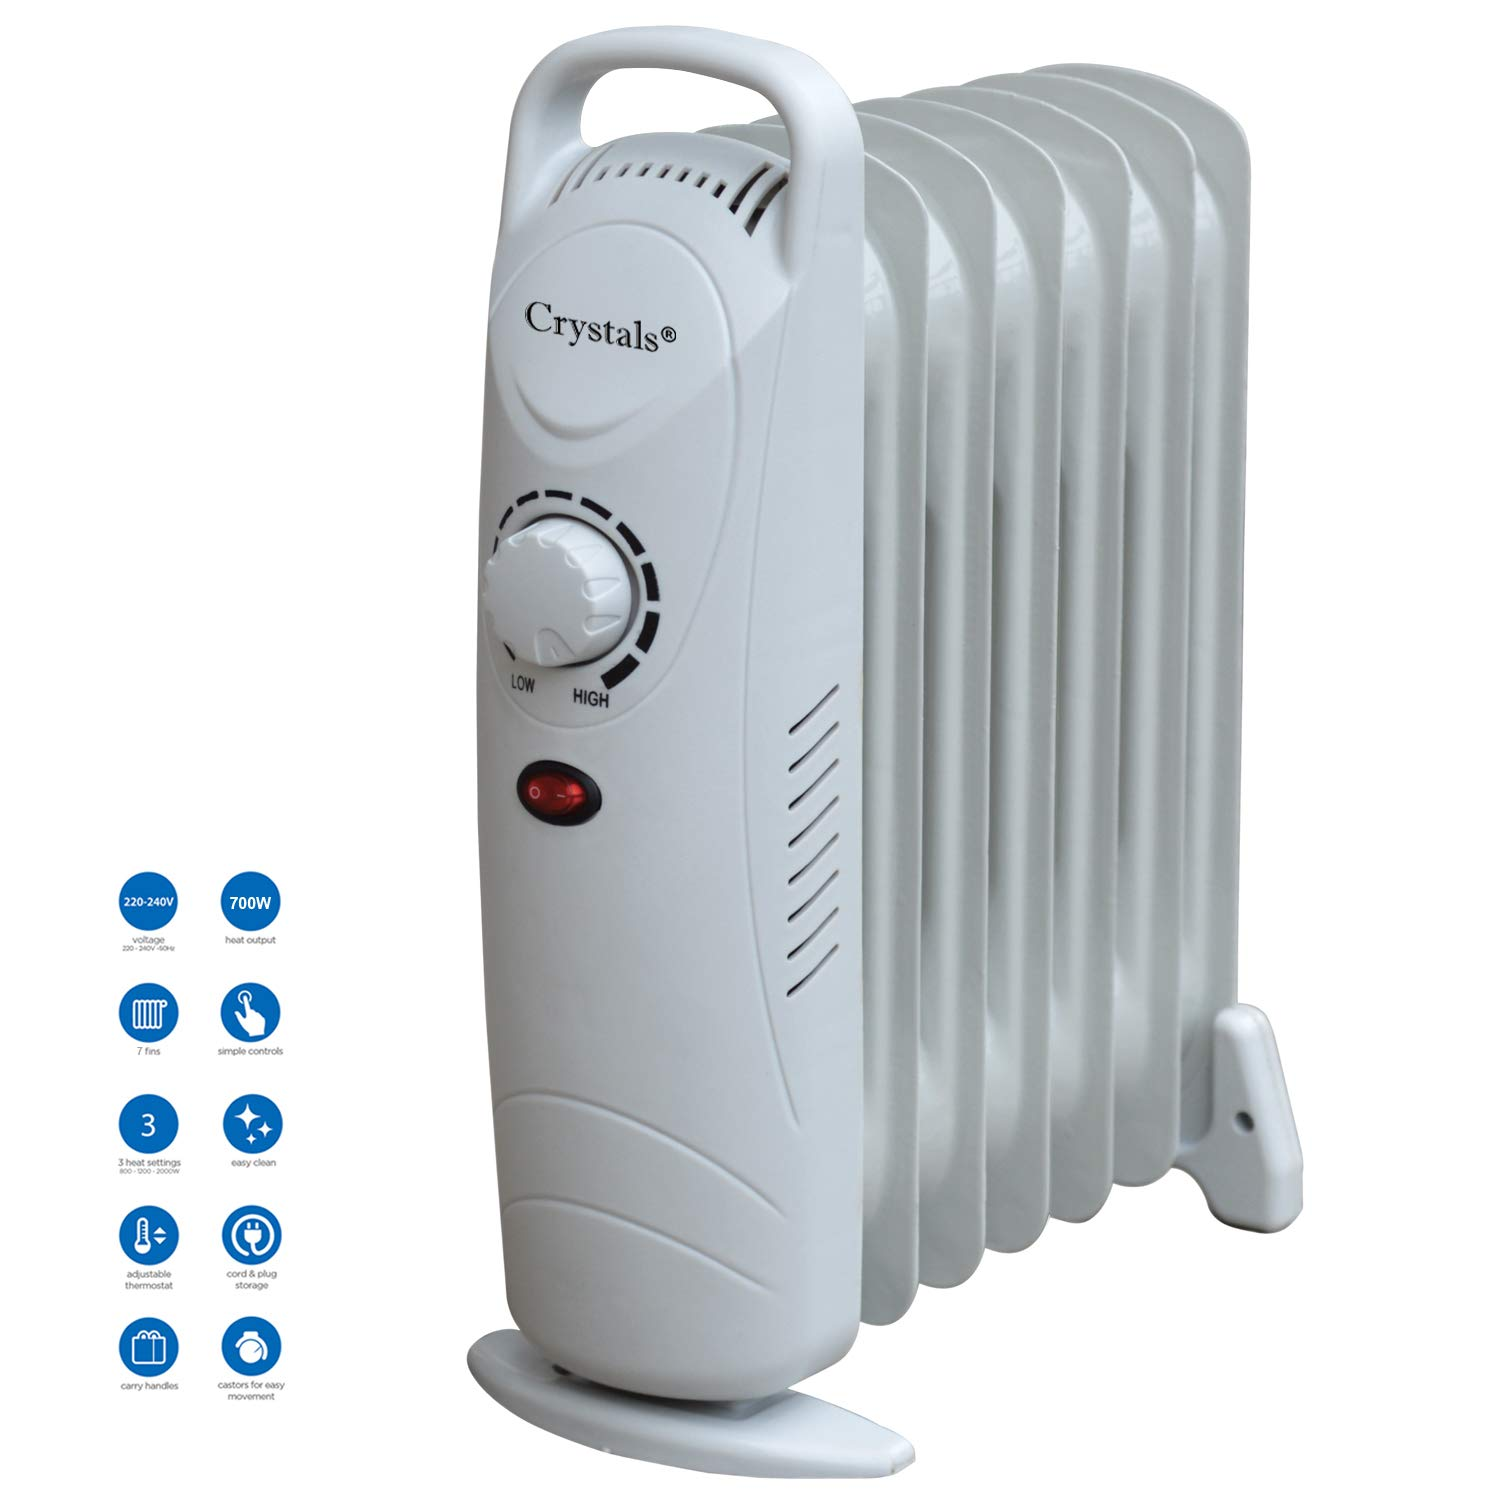 Denny Shop 5 7 9 /& 11 Fin Oil Filled Radiator 240V Electric Portable Heater With Timer /& 3 Heat Setting Thermostat by Crystals/® 5 Fins 500W